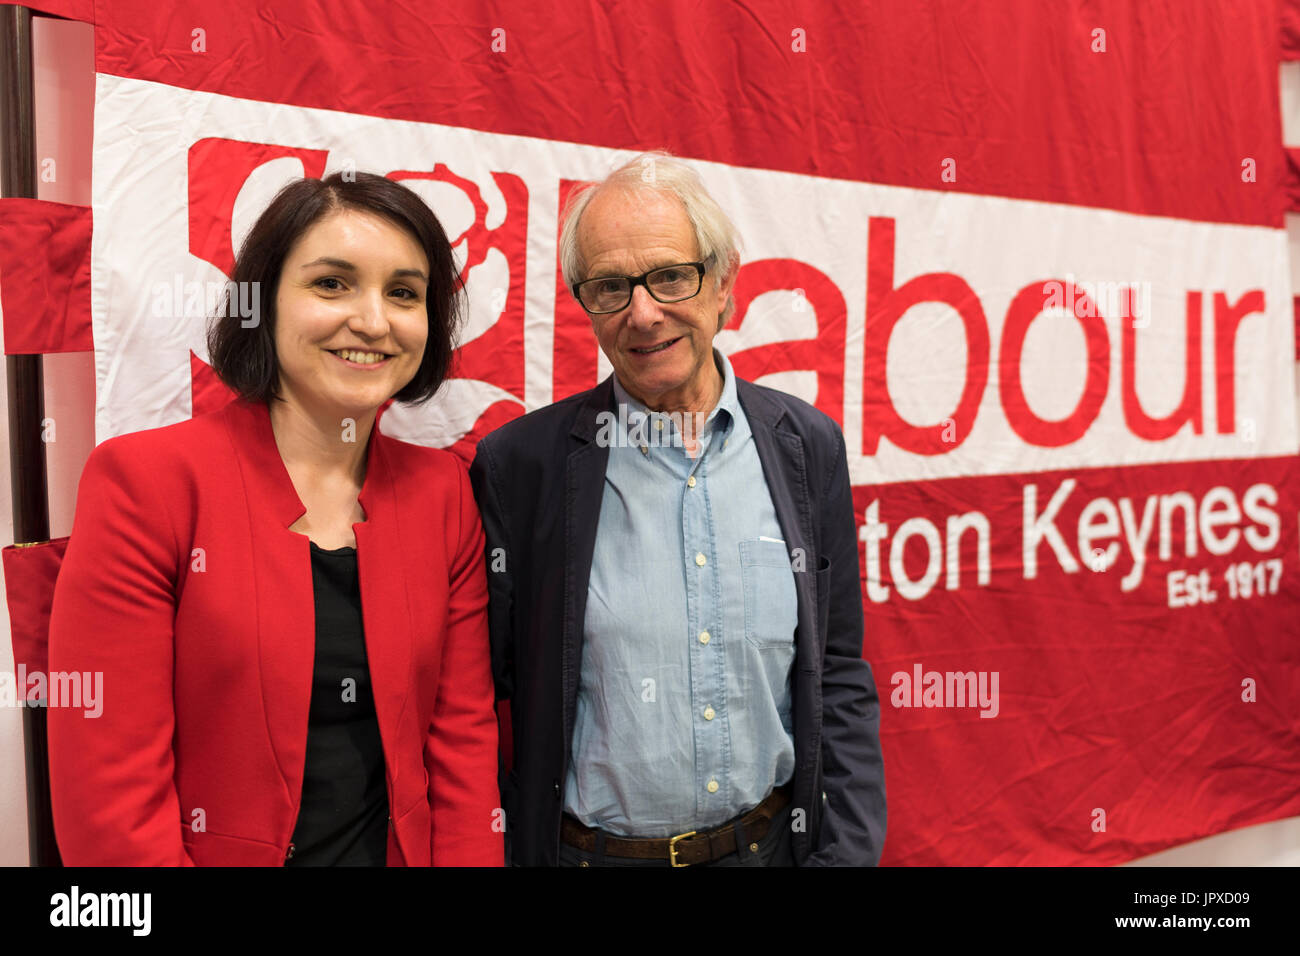 Film director Ken Loach with Charlynne Pullen (Labour candidate for Milton Keynes North in 2017) photographed against a Labour Party banner. - Stock Image